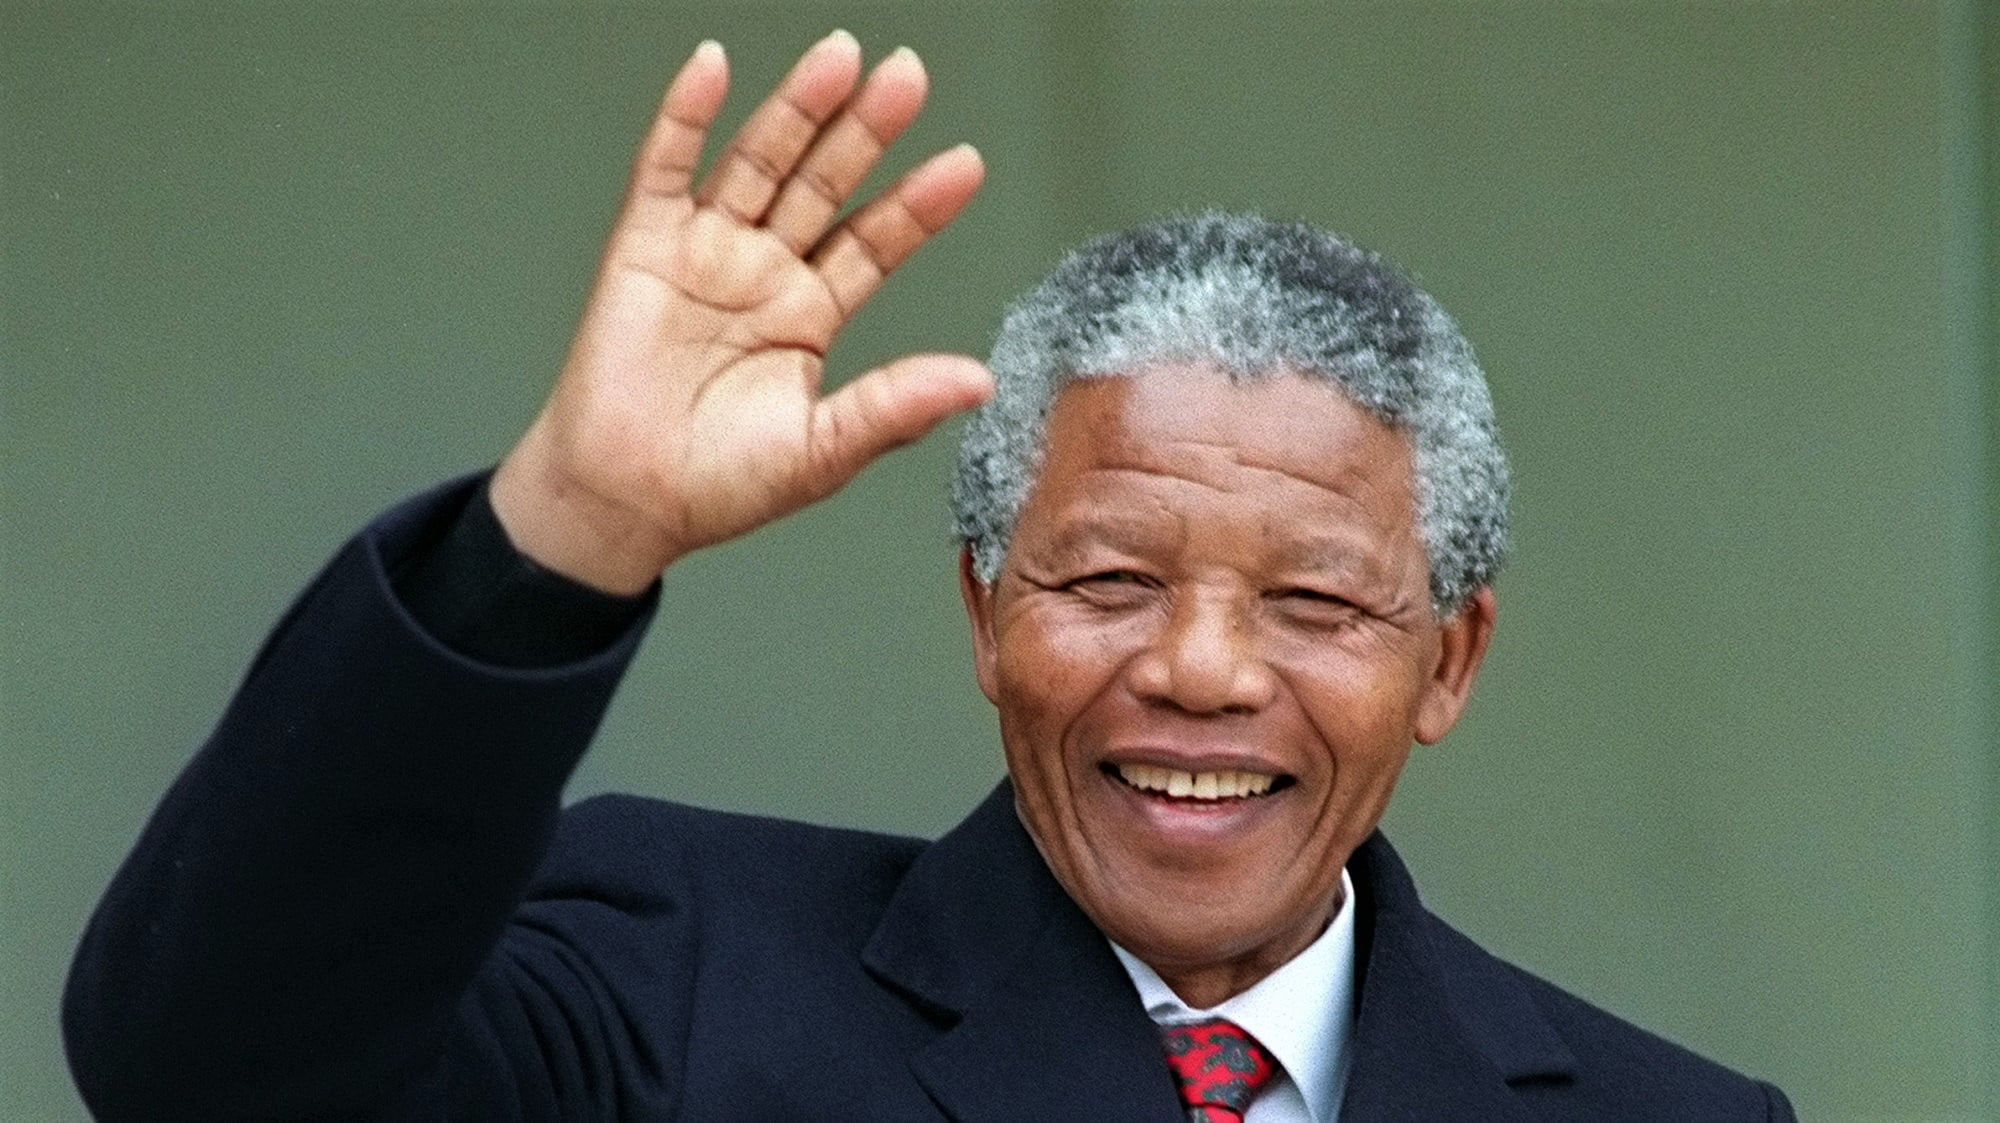 Mandela's first speech as a free man marked in Cape Town